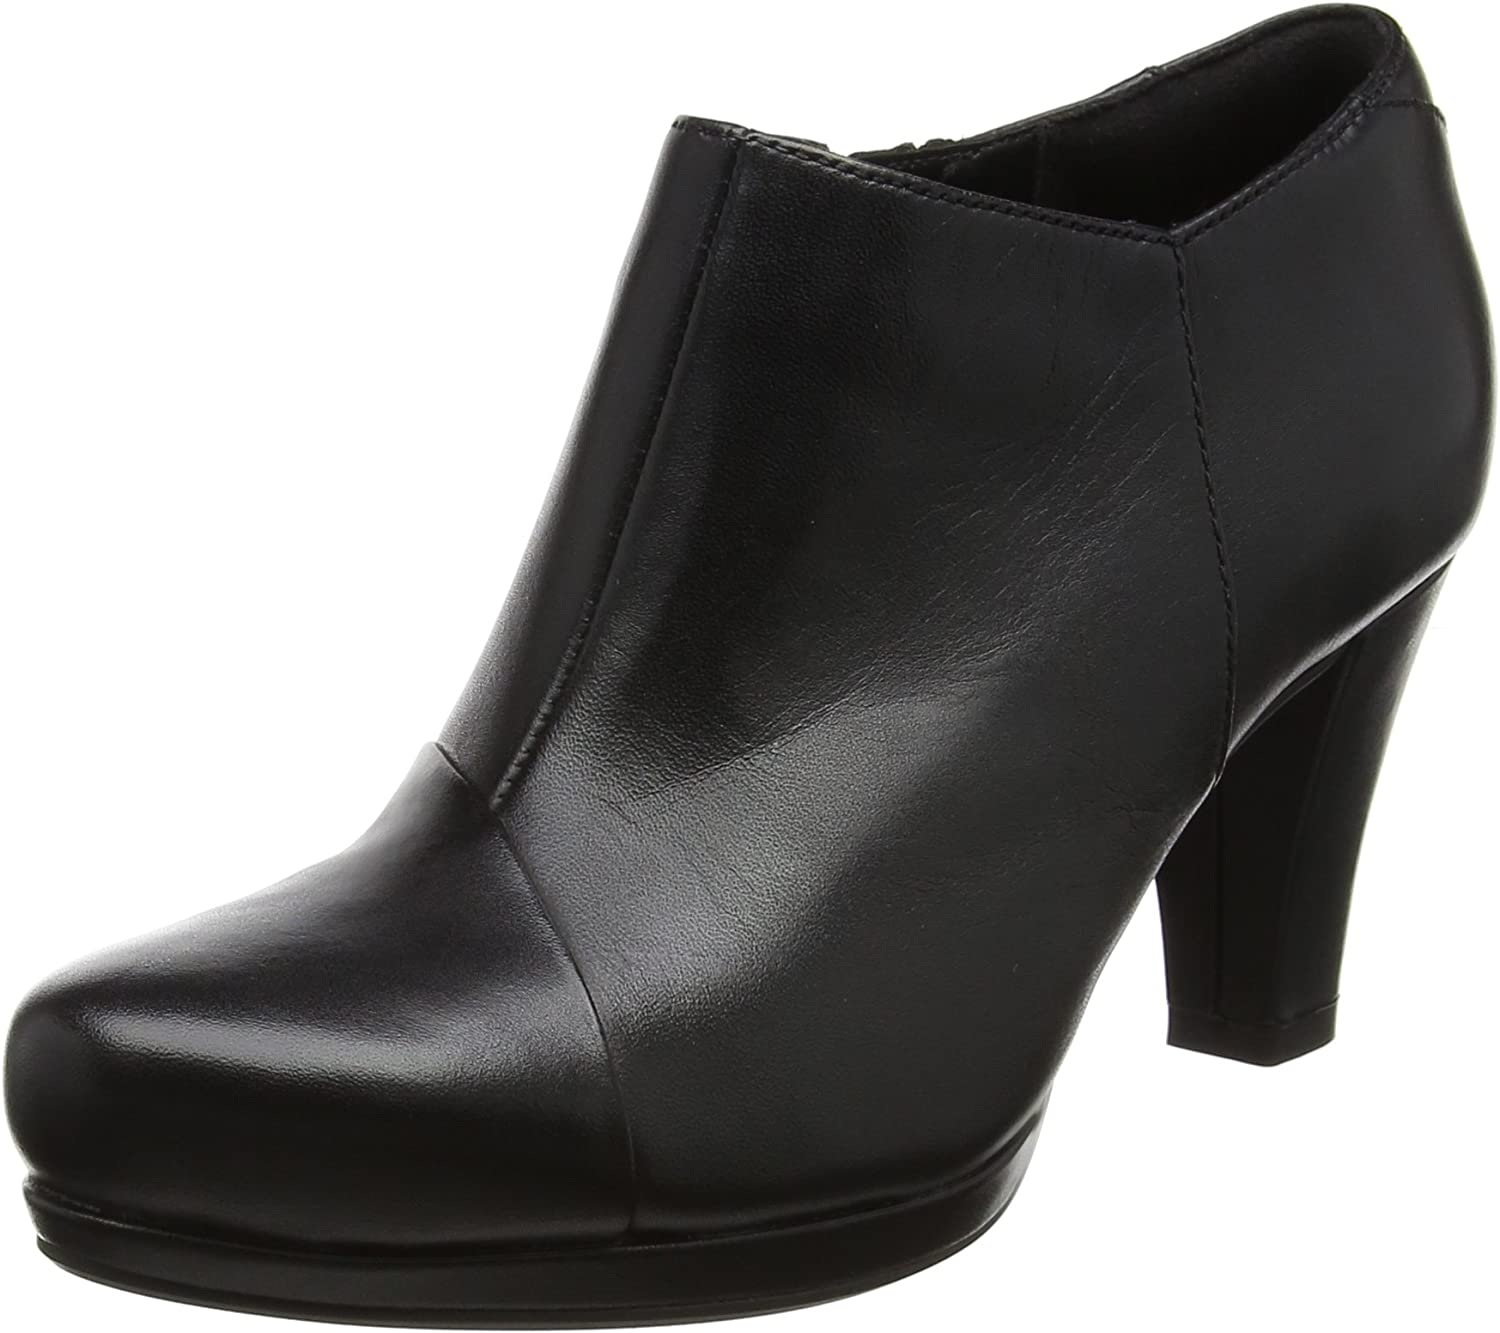 Clarks Chorus Jingle - Black Leather Womens Boots